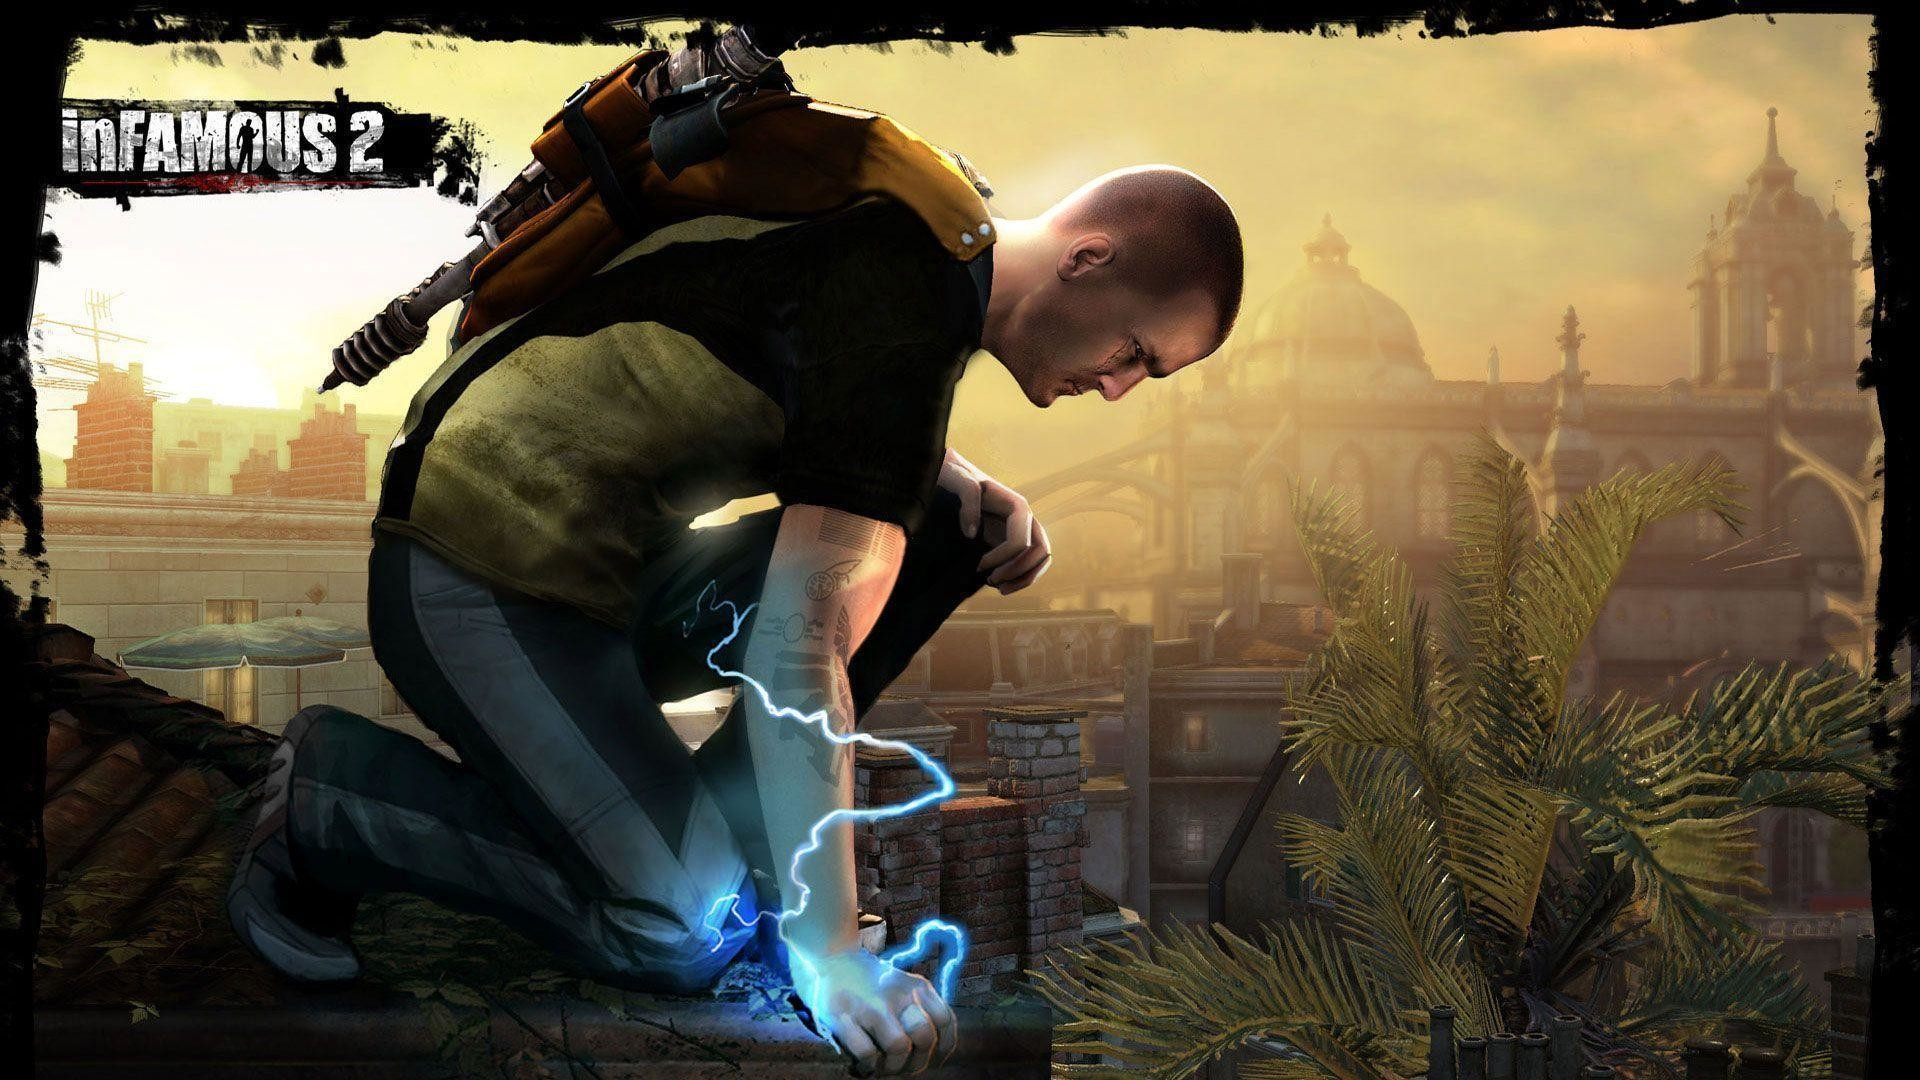 1920x1080 Infamous 2 Wallpaper Hd wallpaper - 1177811